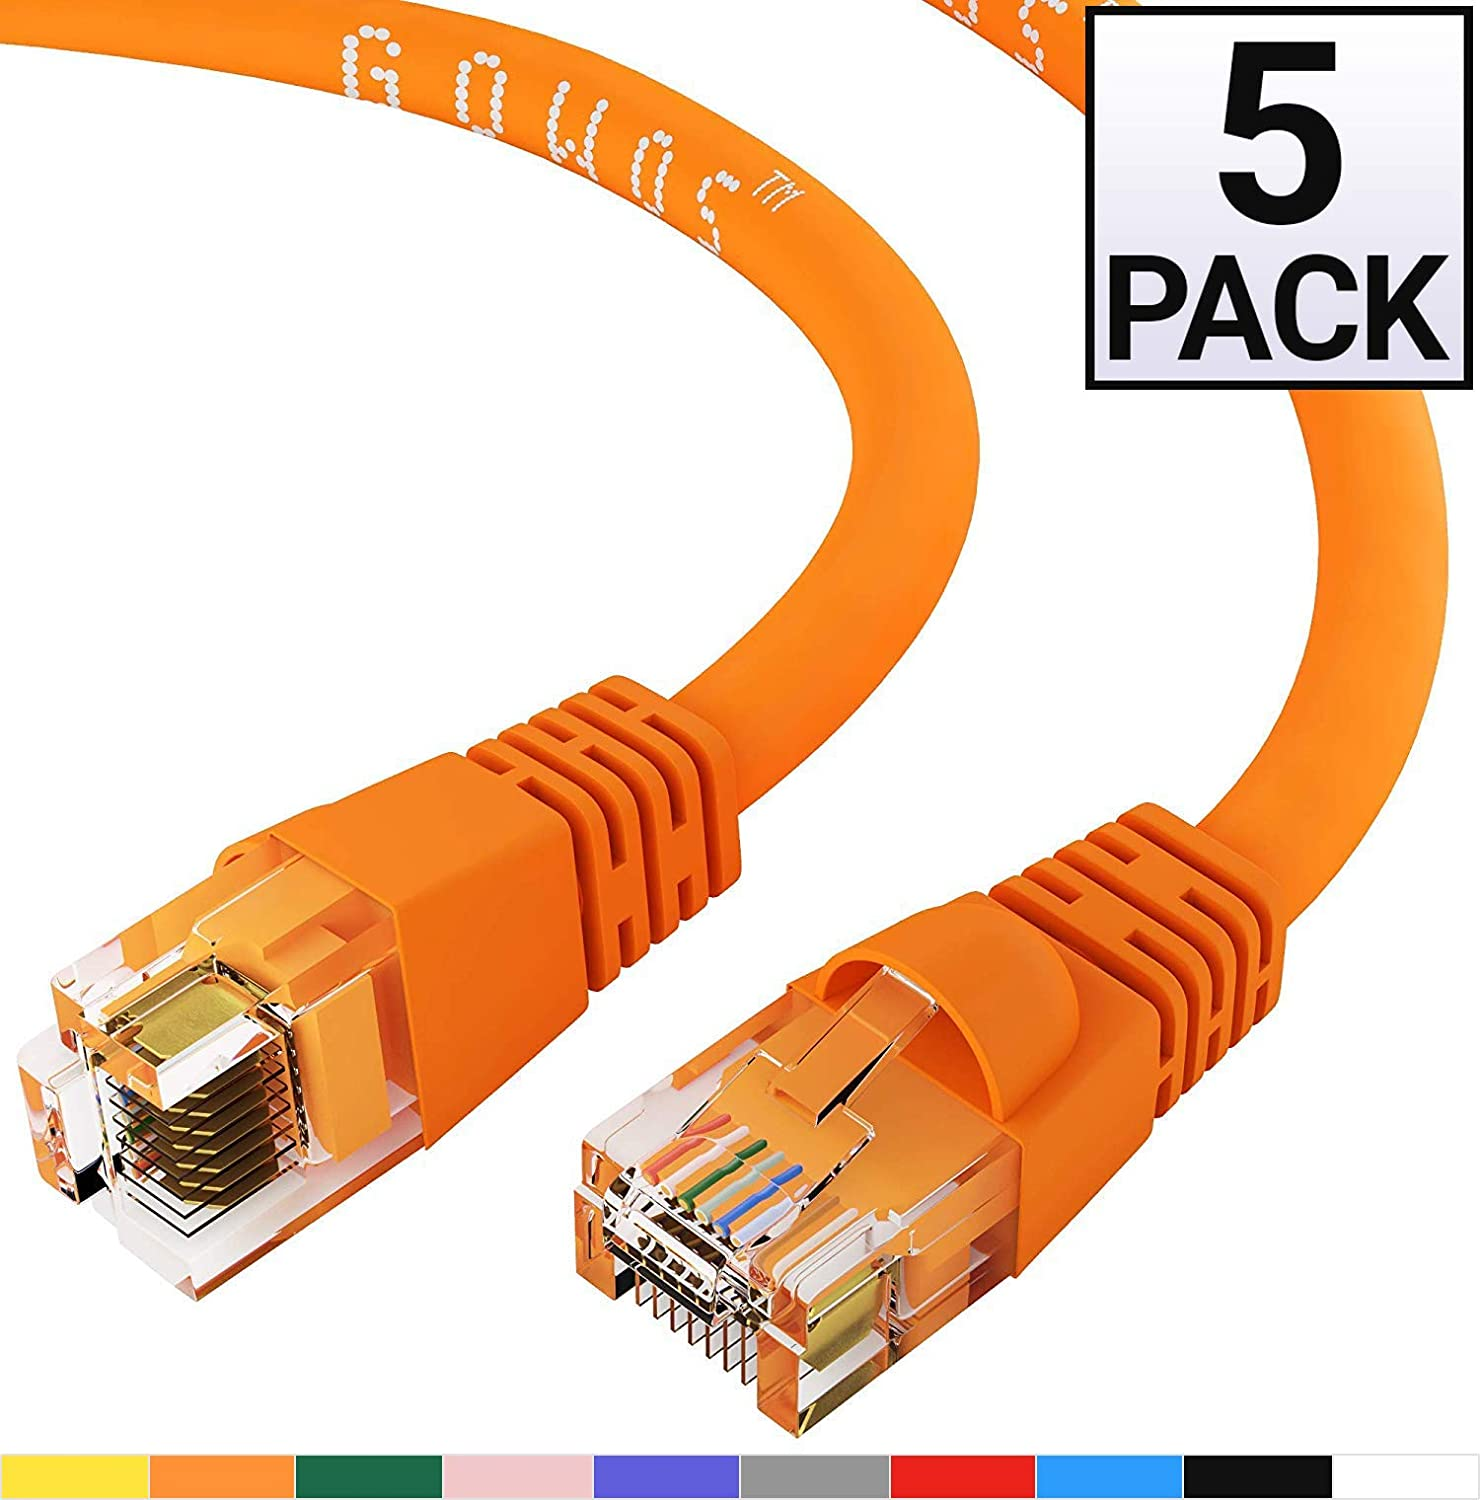 GOWOS 5-Pack, Cat6 Ethernet Cable (2 Feet - Orange) UTP - Computer Network Cable with Snagless Connector - RJ45 10Gbps High Speed LAN Internet Patch Cord - Available in 28 Lengths and 10 Colors